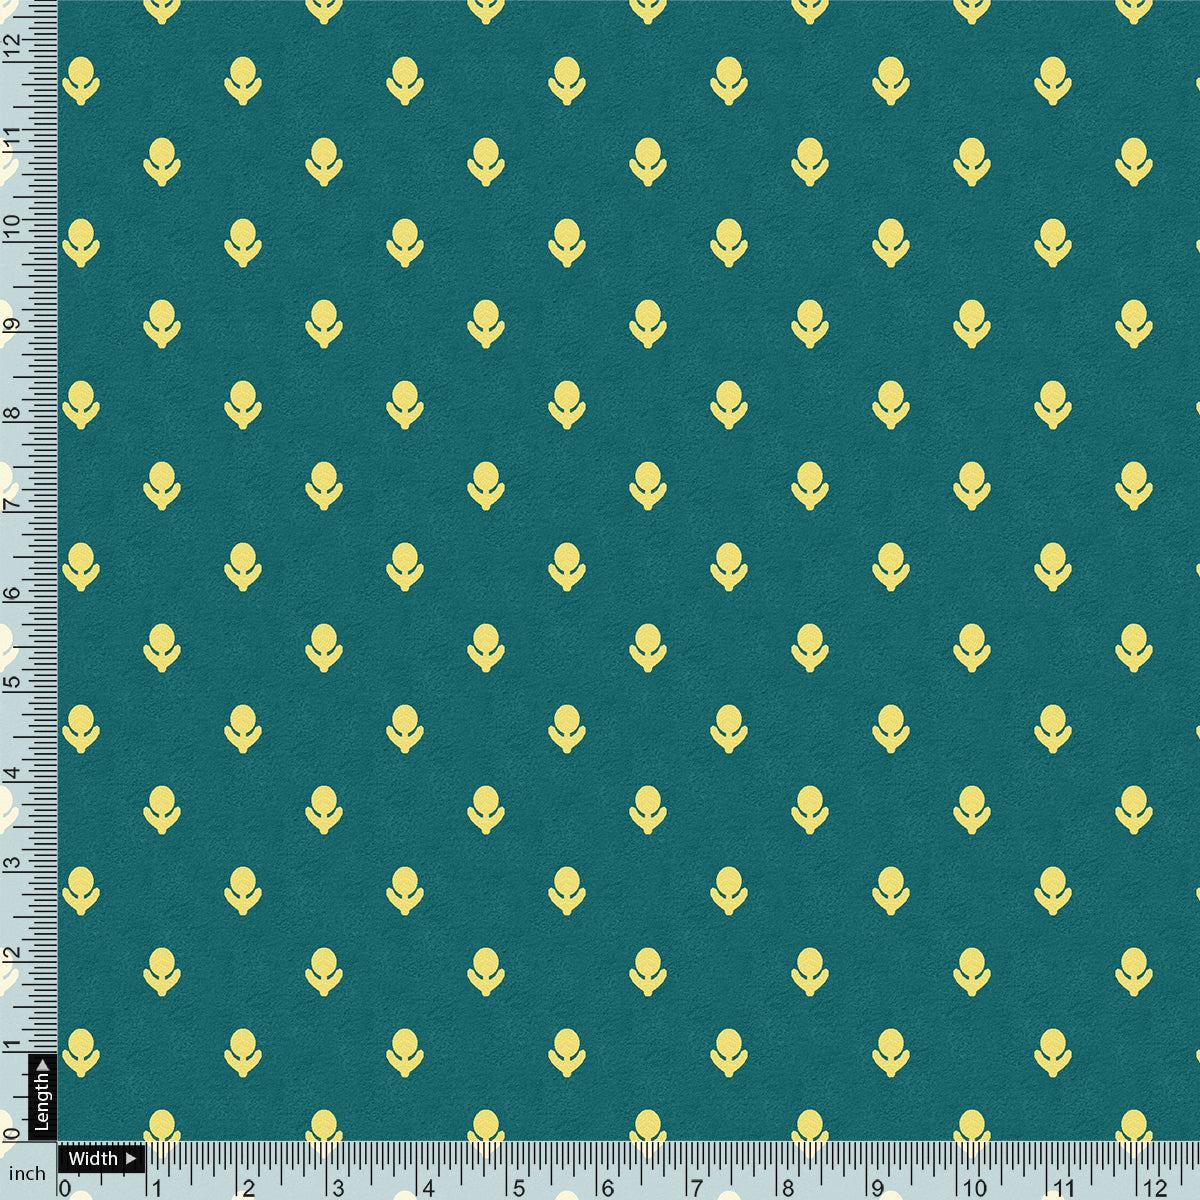 Small And Single Motif Allover Digital Printed Fabric